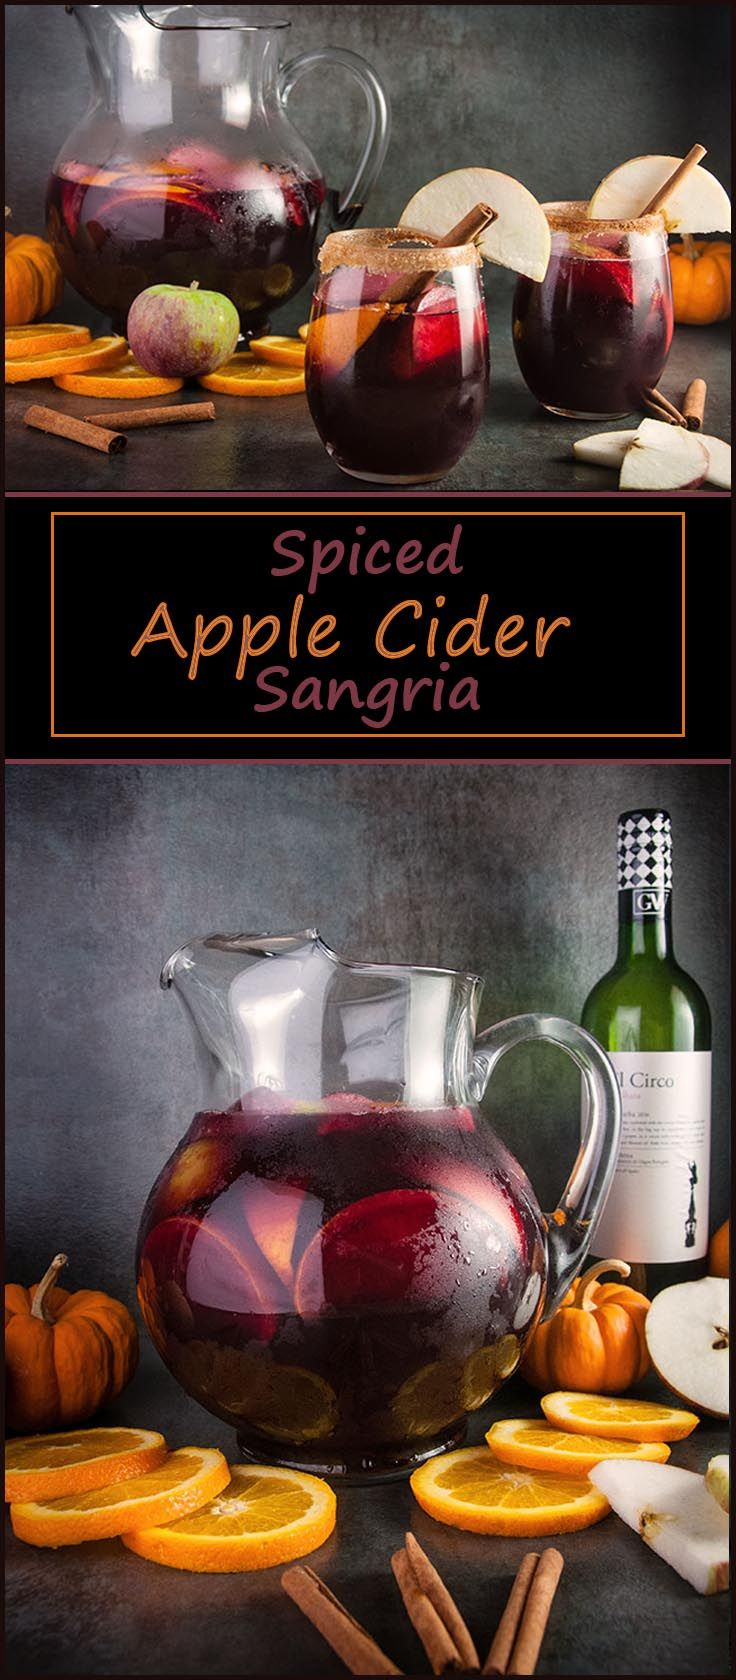 Spiced Apple Cider Sangria #ad #GarnachaDay #GrenacheDay @winesofGarnacha